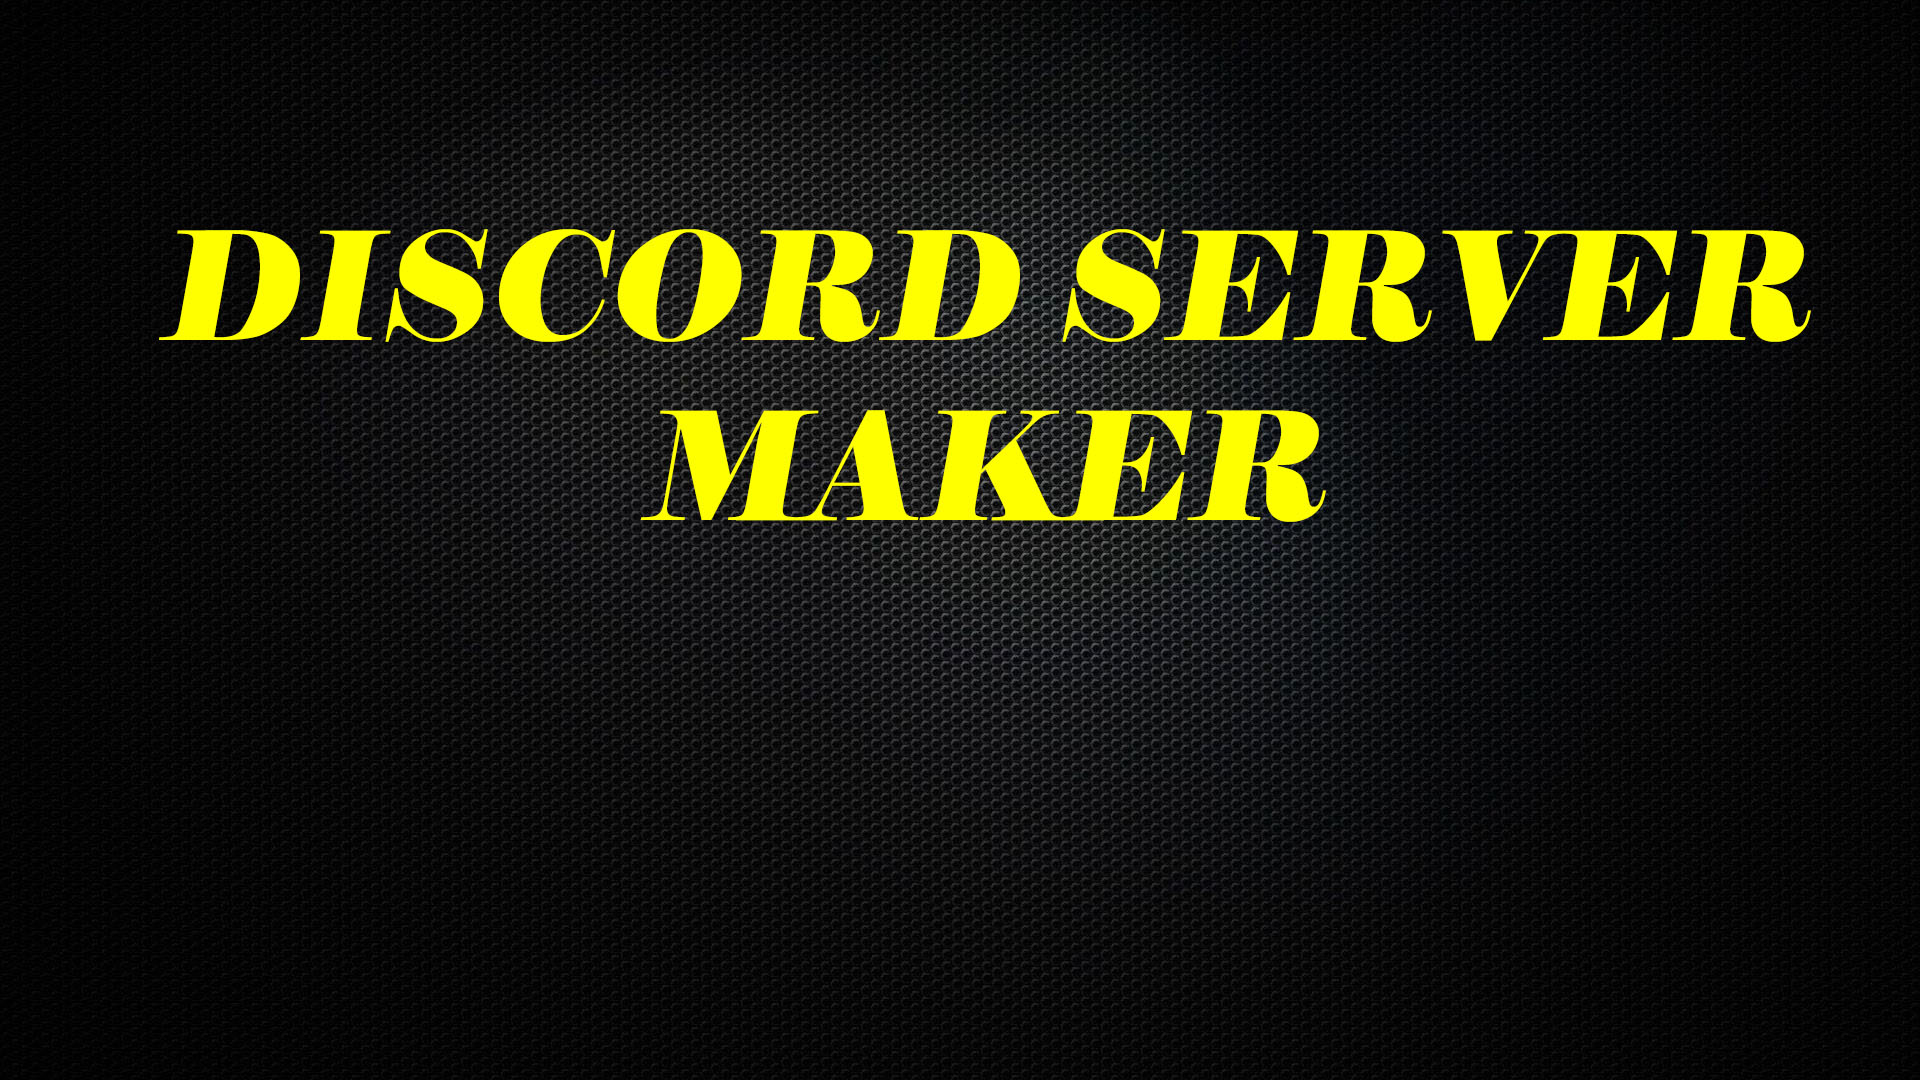 I will make a pro discord server for you within 12 hours